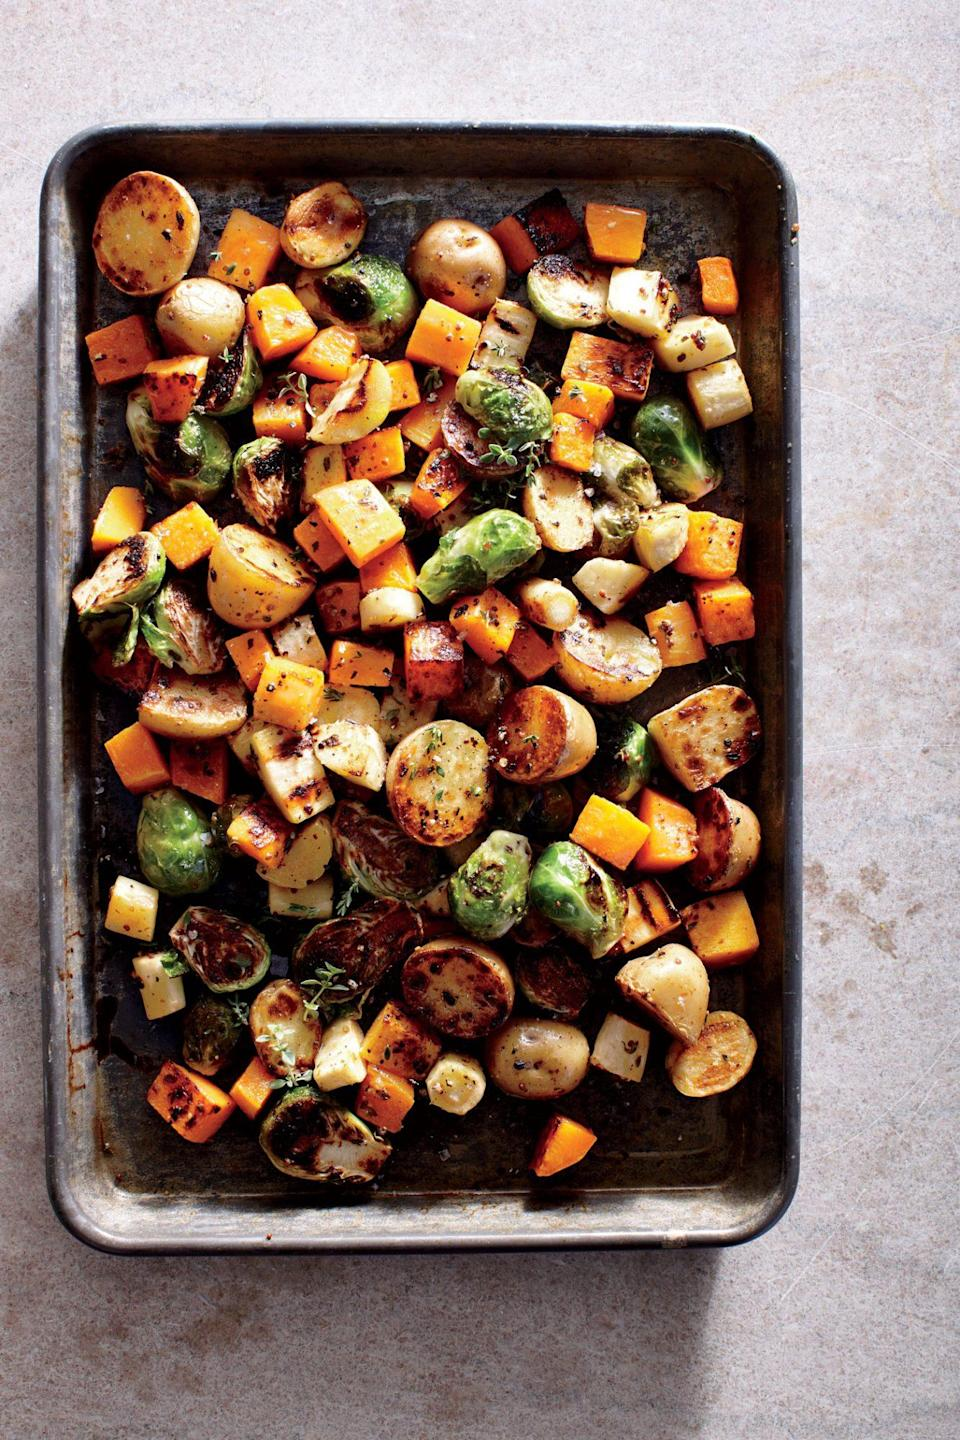 """<p>A mix of colorful root vegetables may be your star side. Peeled, pre-chopped <a href=""""https://www.myrecipes.com/healthy-diet/ways-to-cook-butternut-squash"""" rel=""""nofollow noopener"""" target=""""_blank"""" data-ylk=""""slk:butternut squash"""" class=""""link rapid-noclick-resp"""">butternut squash</a> saves time, but pieces tend to be irregular and small--we prefer peeling and cubing it yourself.</p>"""